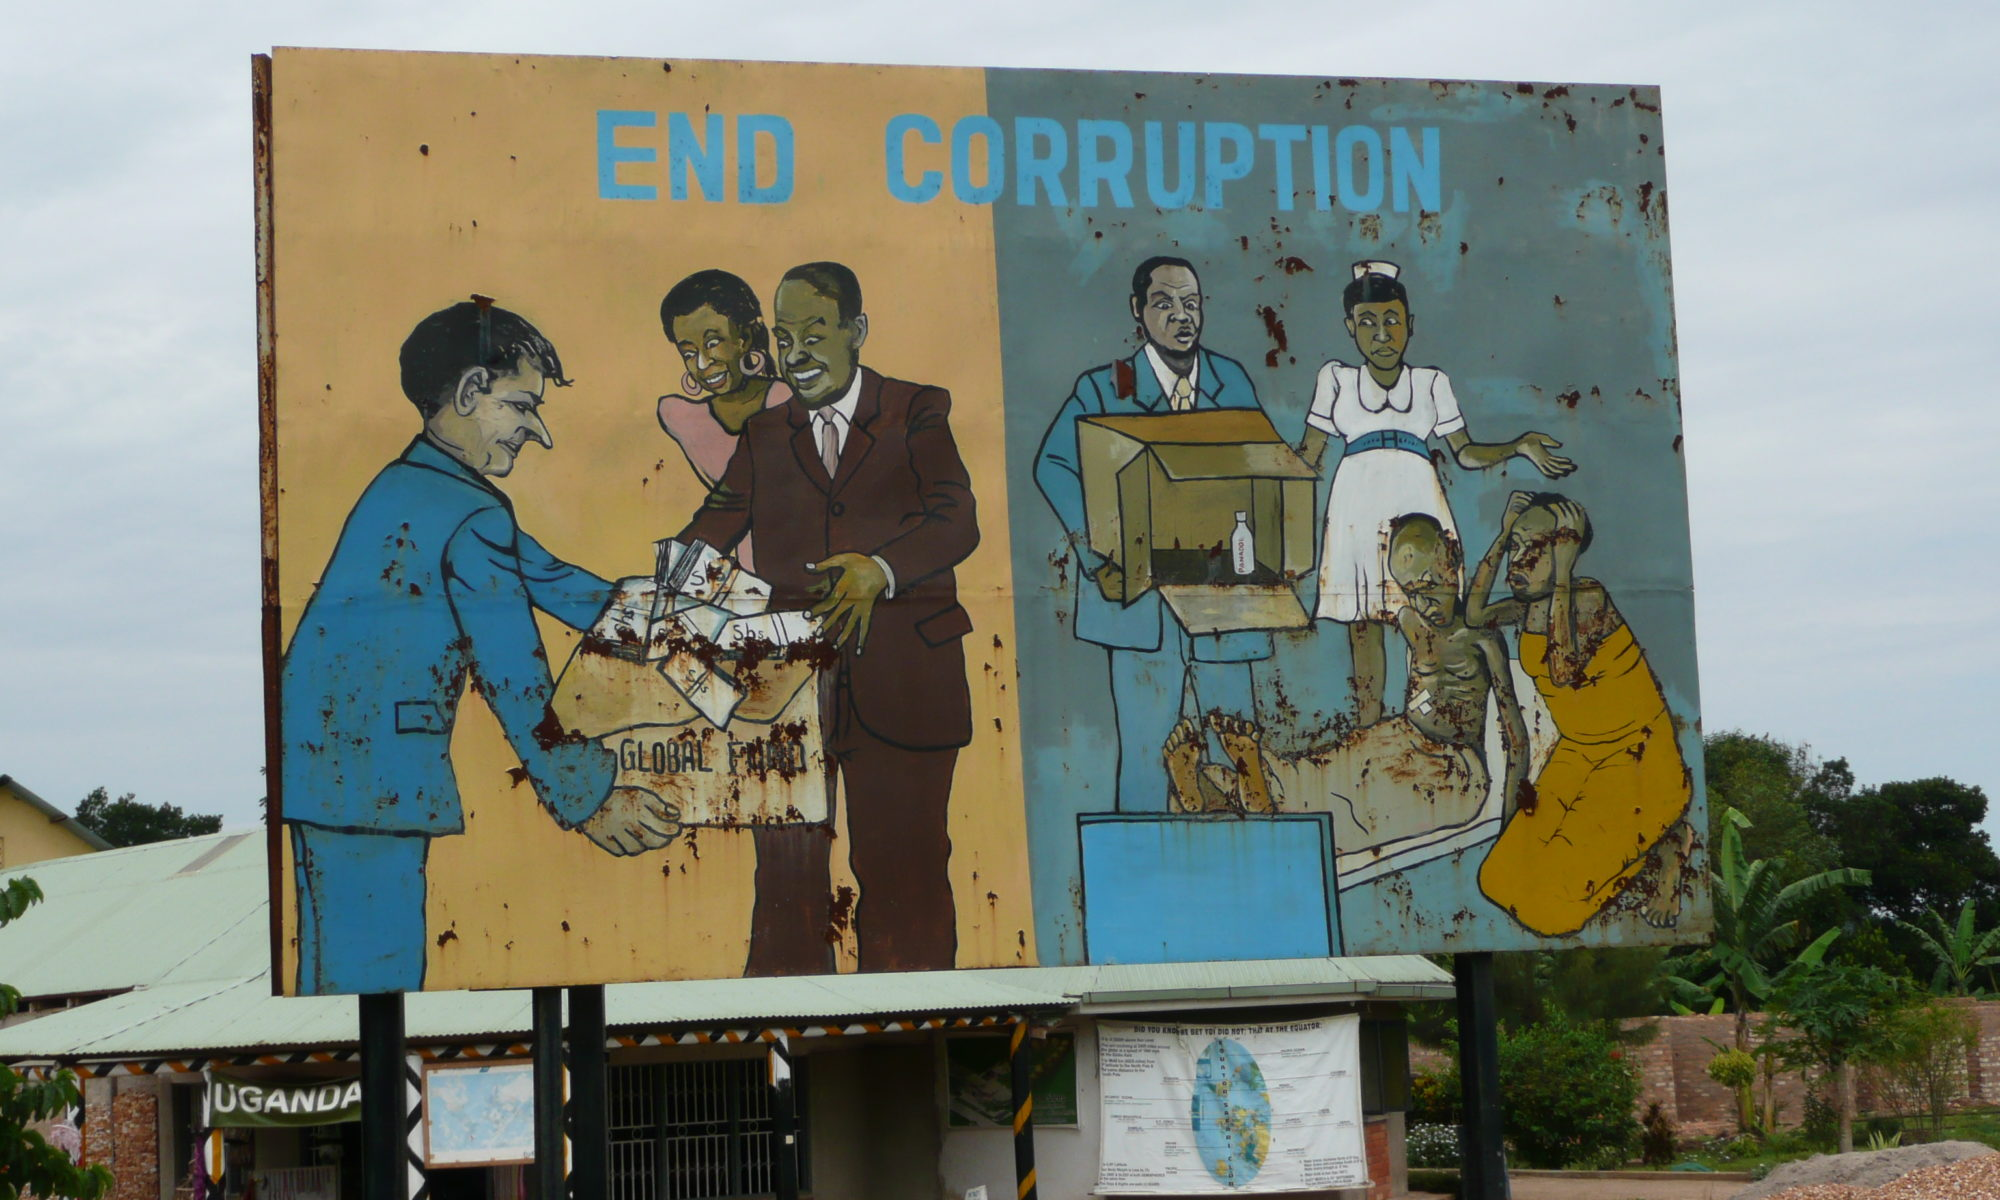 Photo : End corruption, panneau vu en Ouganda en 2008, par CC-by-nc par Michael Sale https://flic.kr/p/5rcgxN.